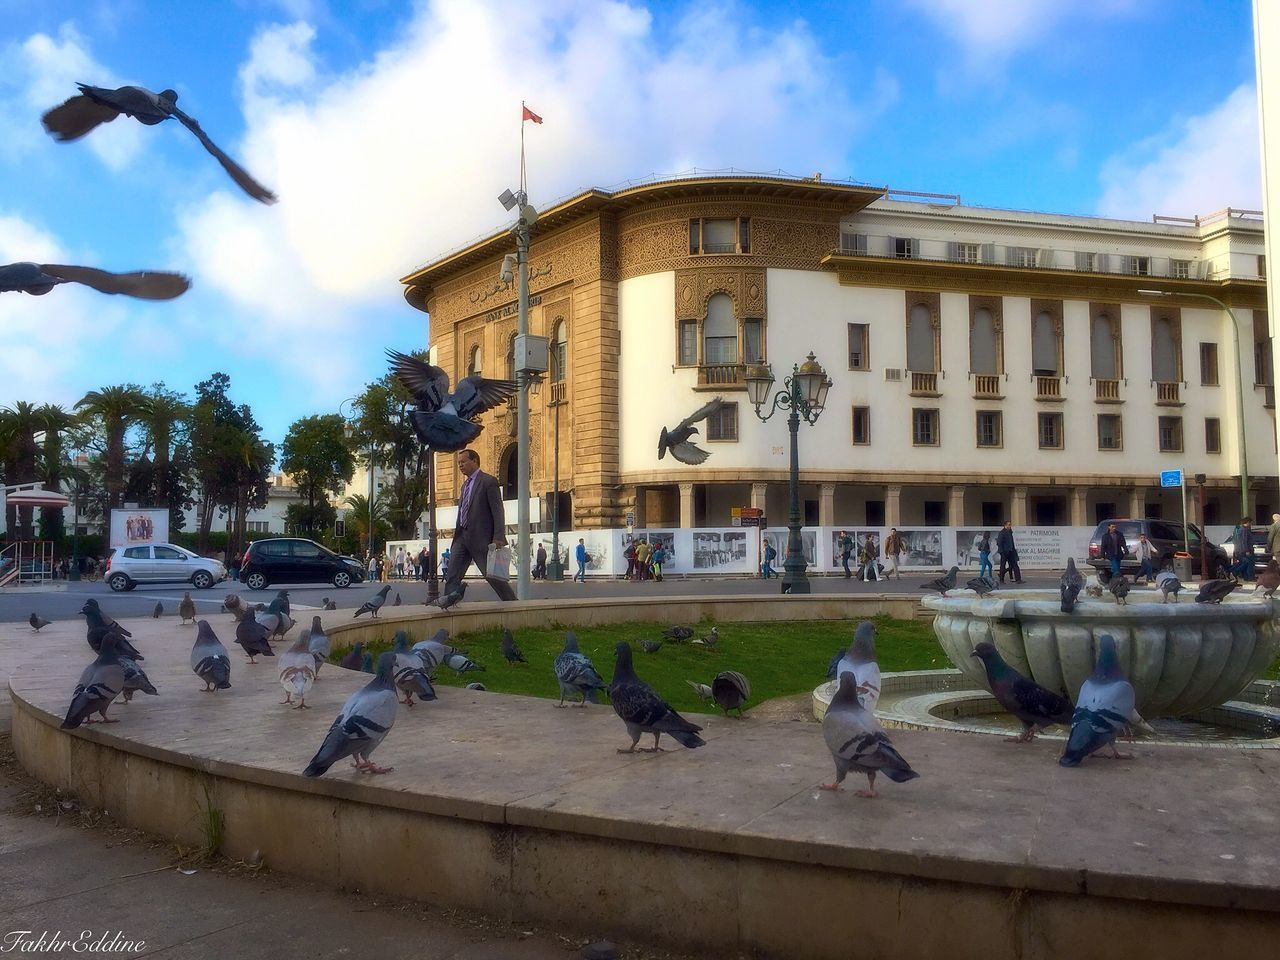 architecture, building exterior, built structure, animal themes, sky, real people, bird, transportation, large group of animals, day, animals in the wild, land vehicle, large group of people, outdoors, cloud - sky, car, animal wildlife, city, mammal, water, tree